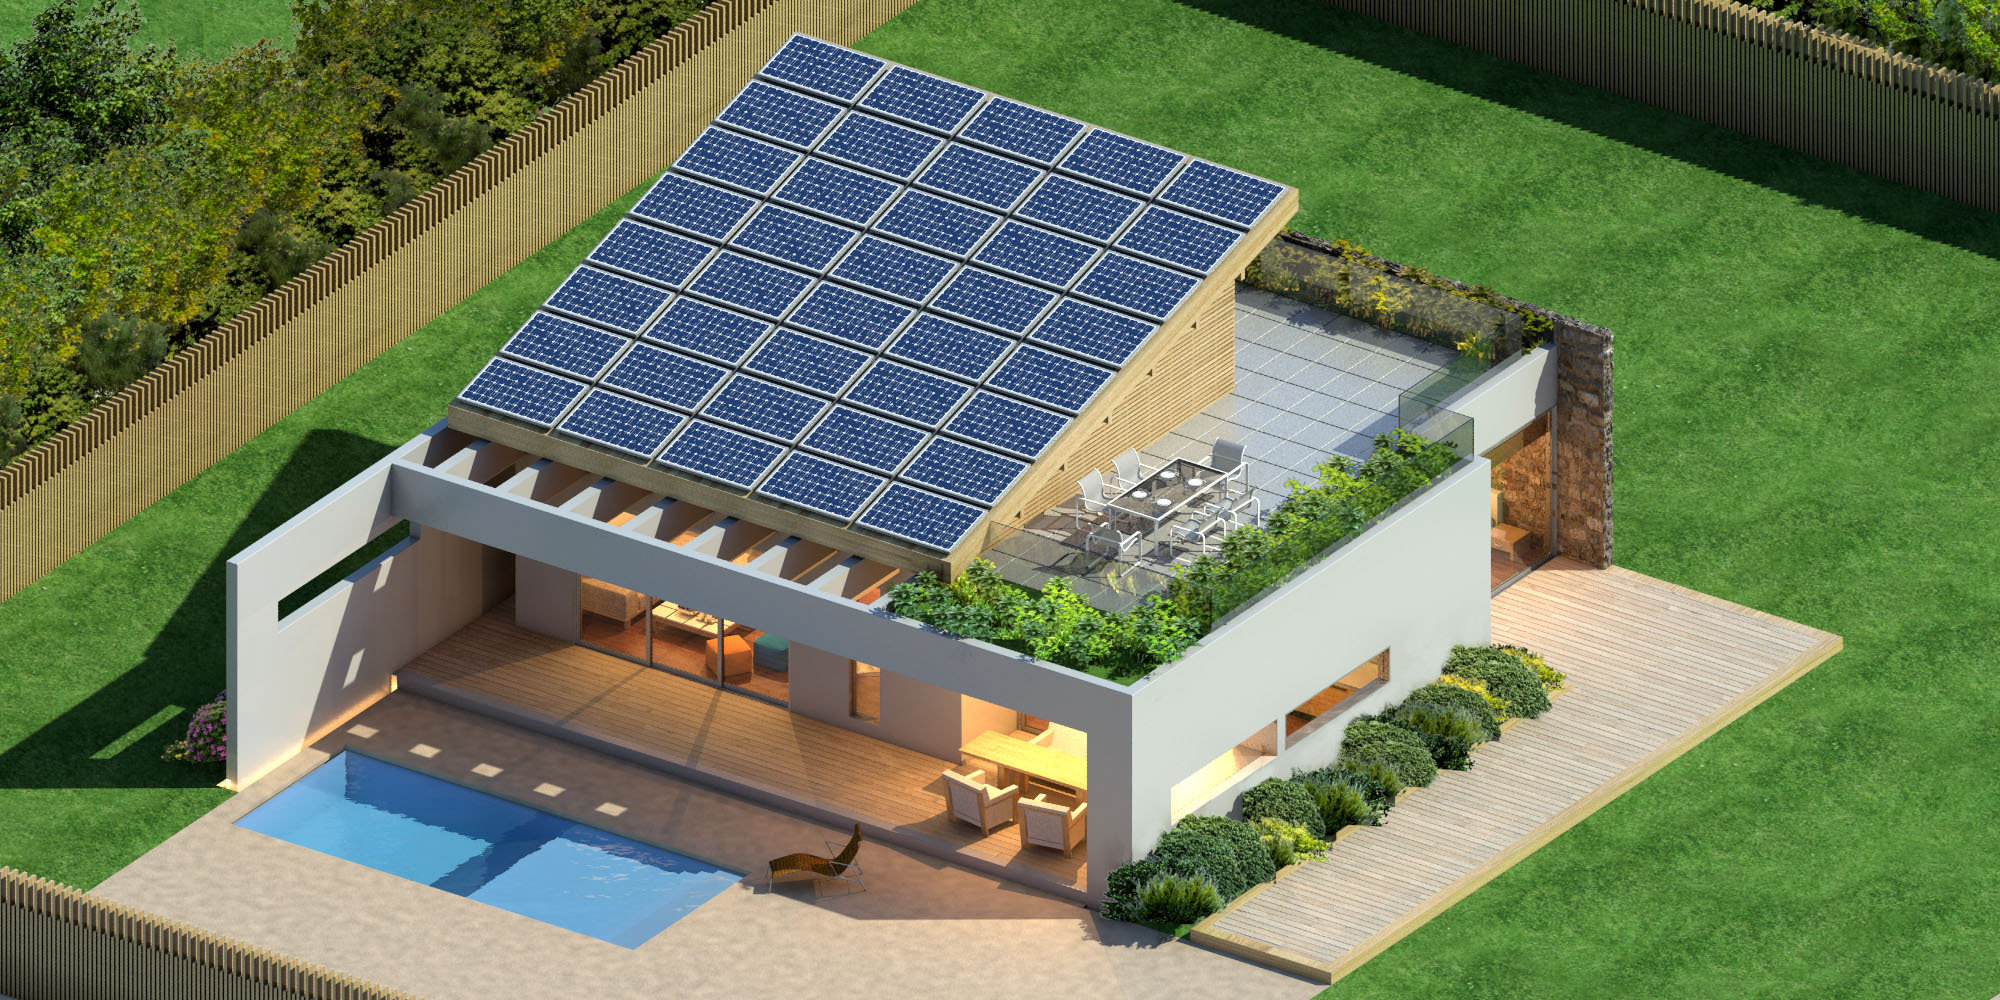 Arzumanidis investments new build solar house in greece New house project